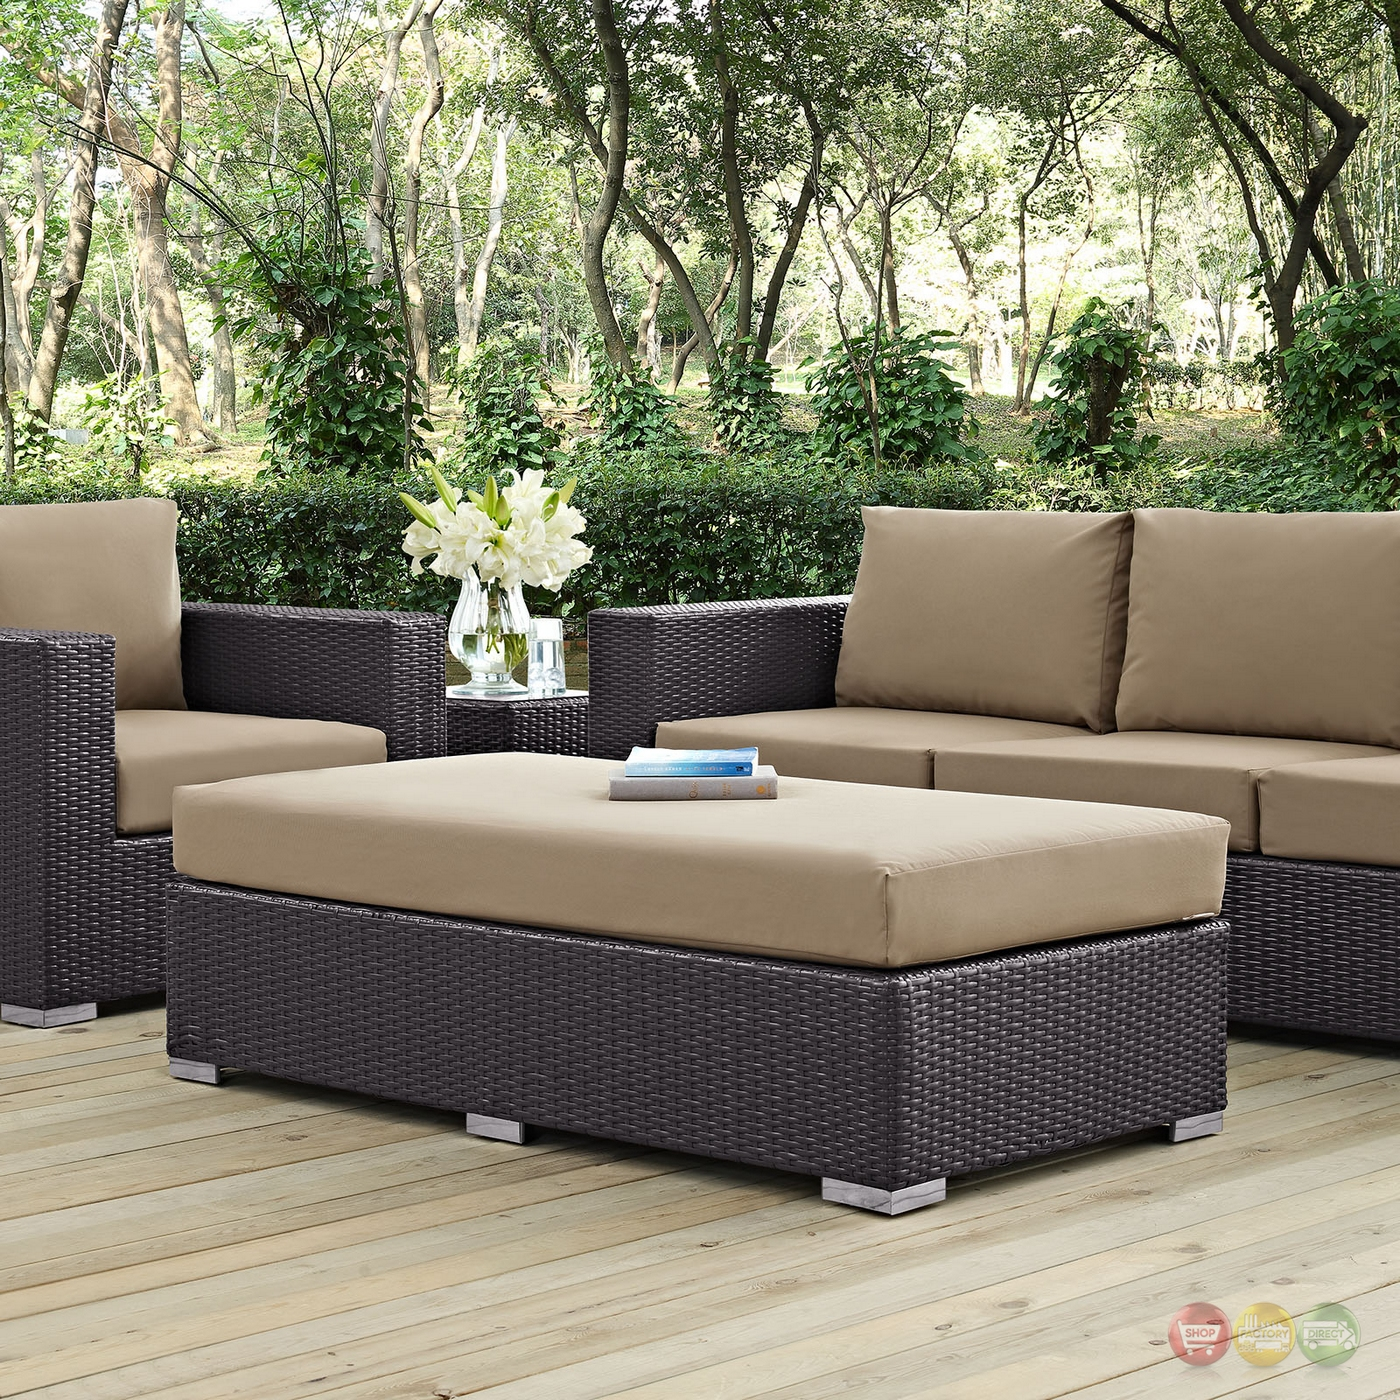 Convene Modular Rattan Outdoor Patio Chaise Lounge w ...